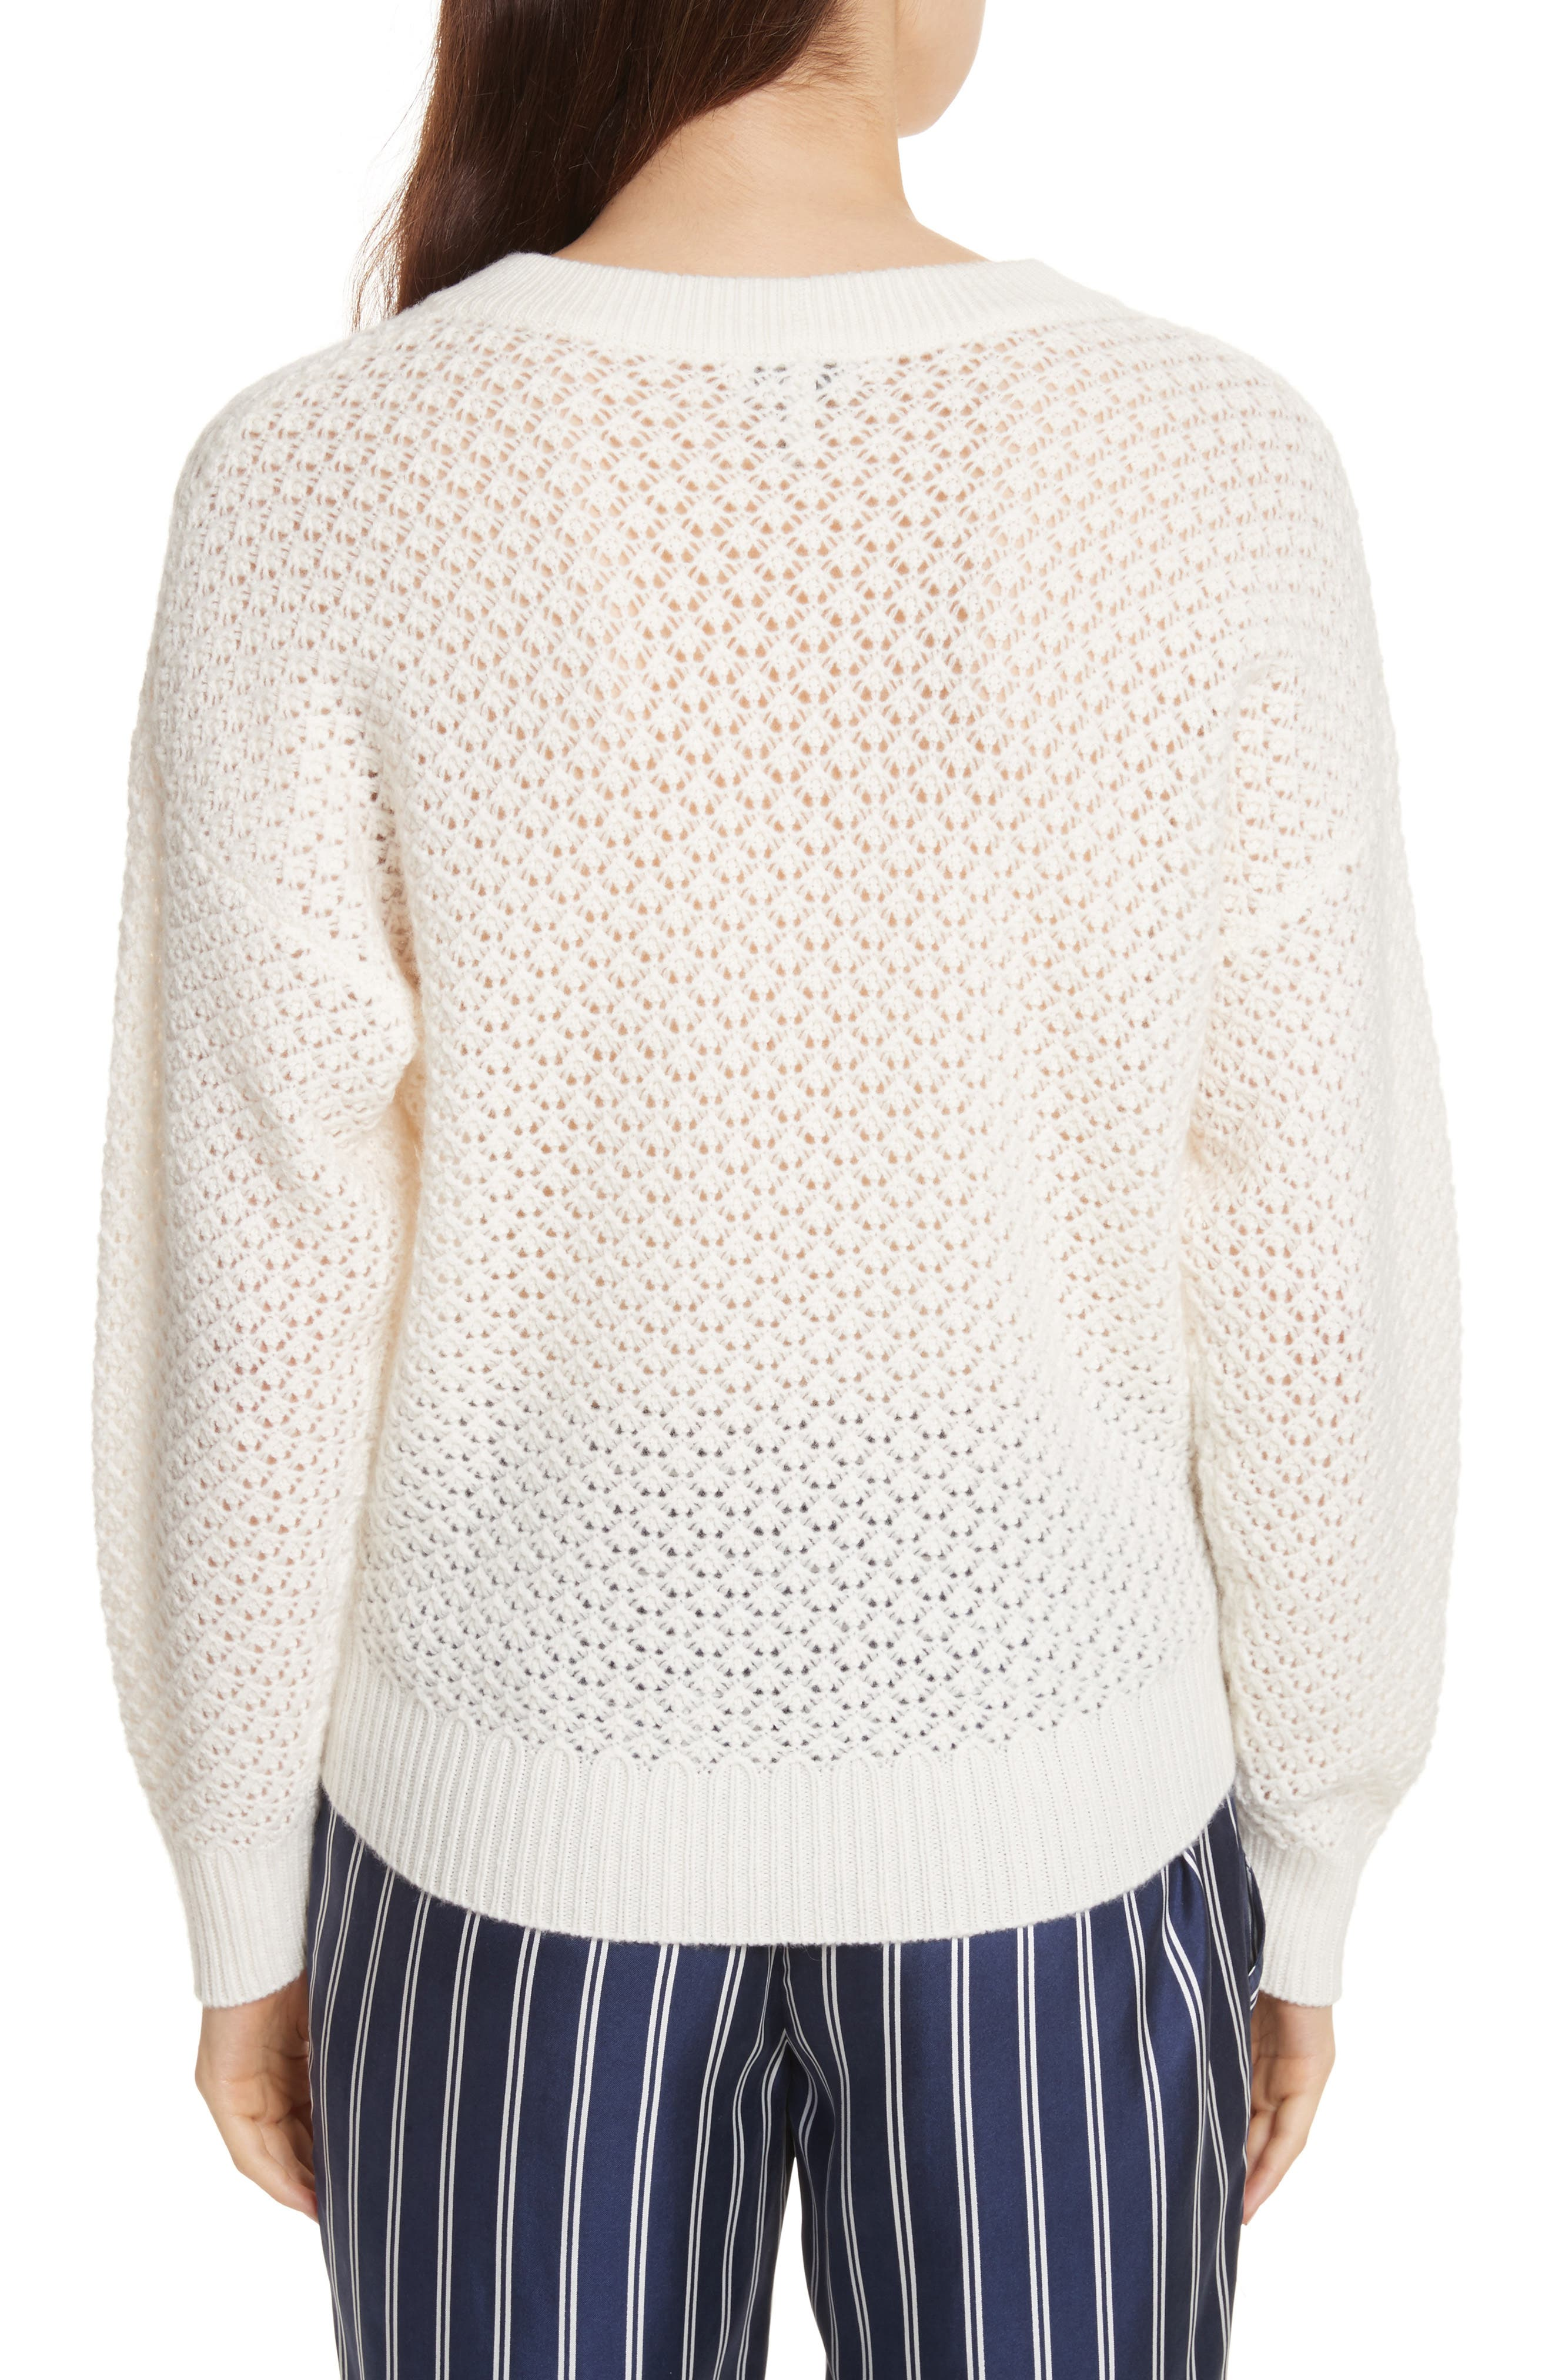 Vedis Wool & Cashmere Sweater,                             Alternate thumbnail 2, color,